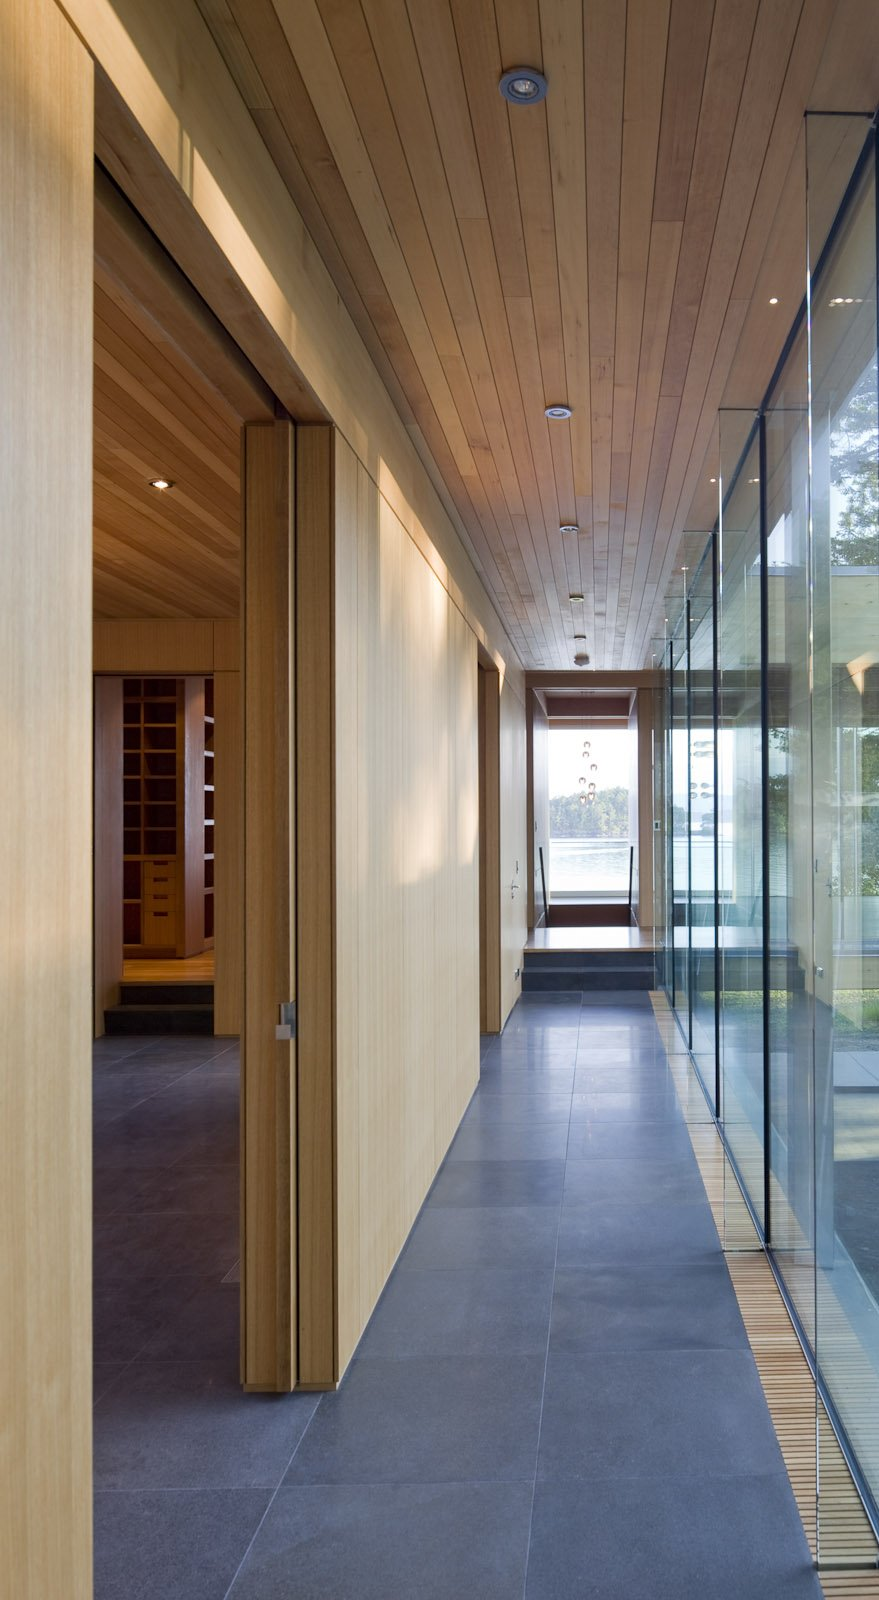 Glass Walls, Wood Ceiling, Oceanfront Home in British Columbia, Canada